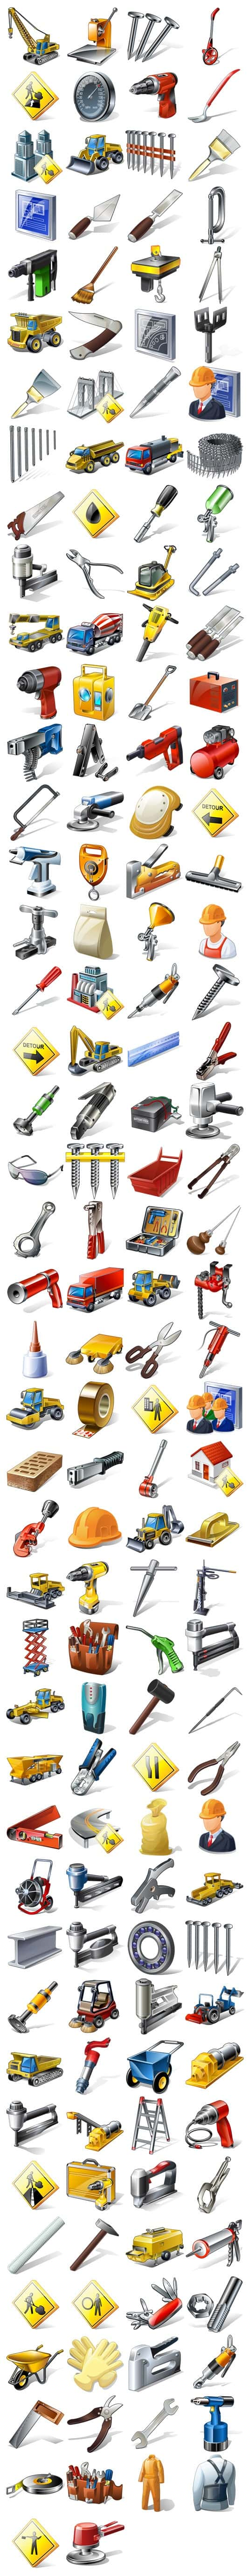 Engineering equipment, tools, people and goods icon series